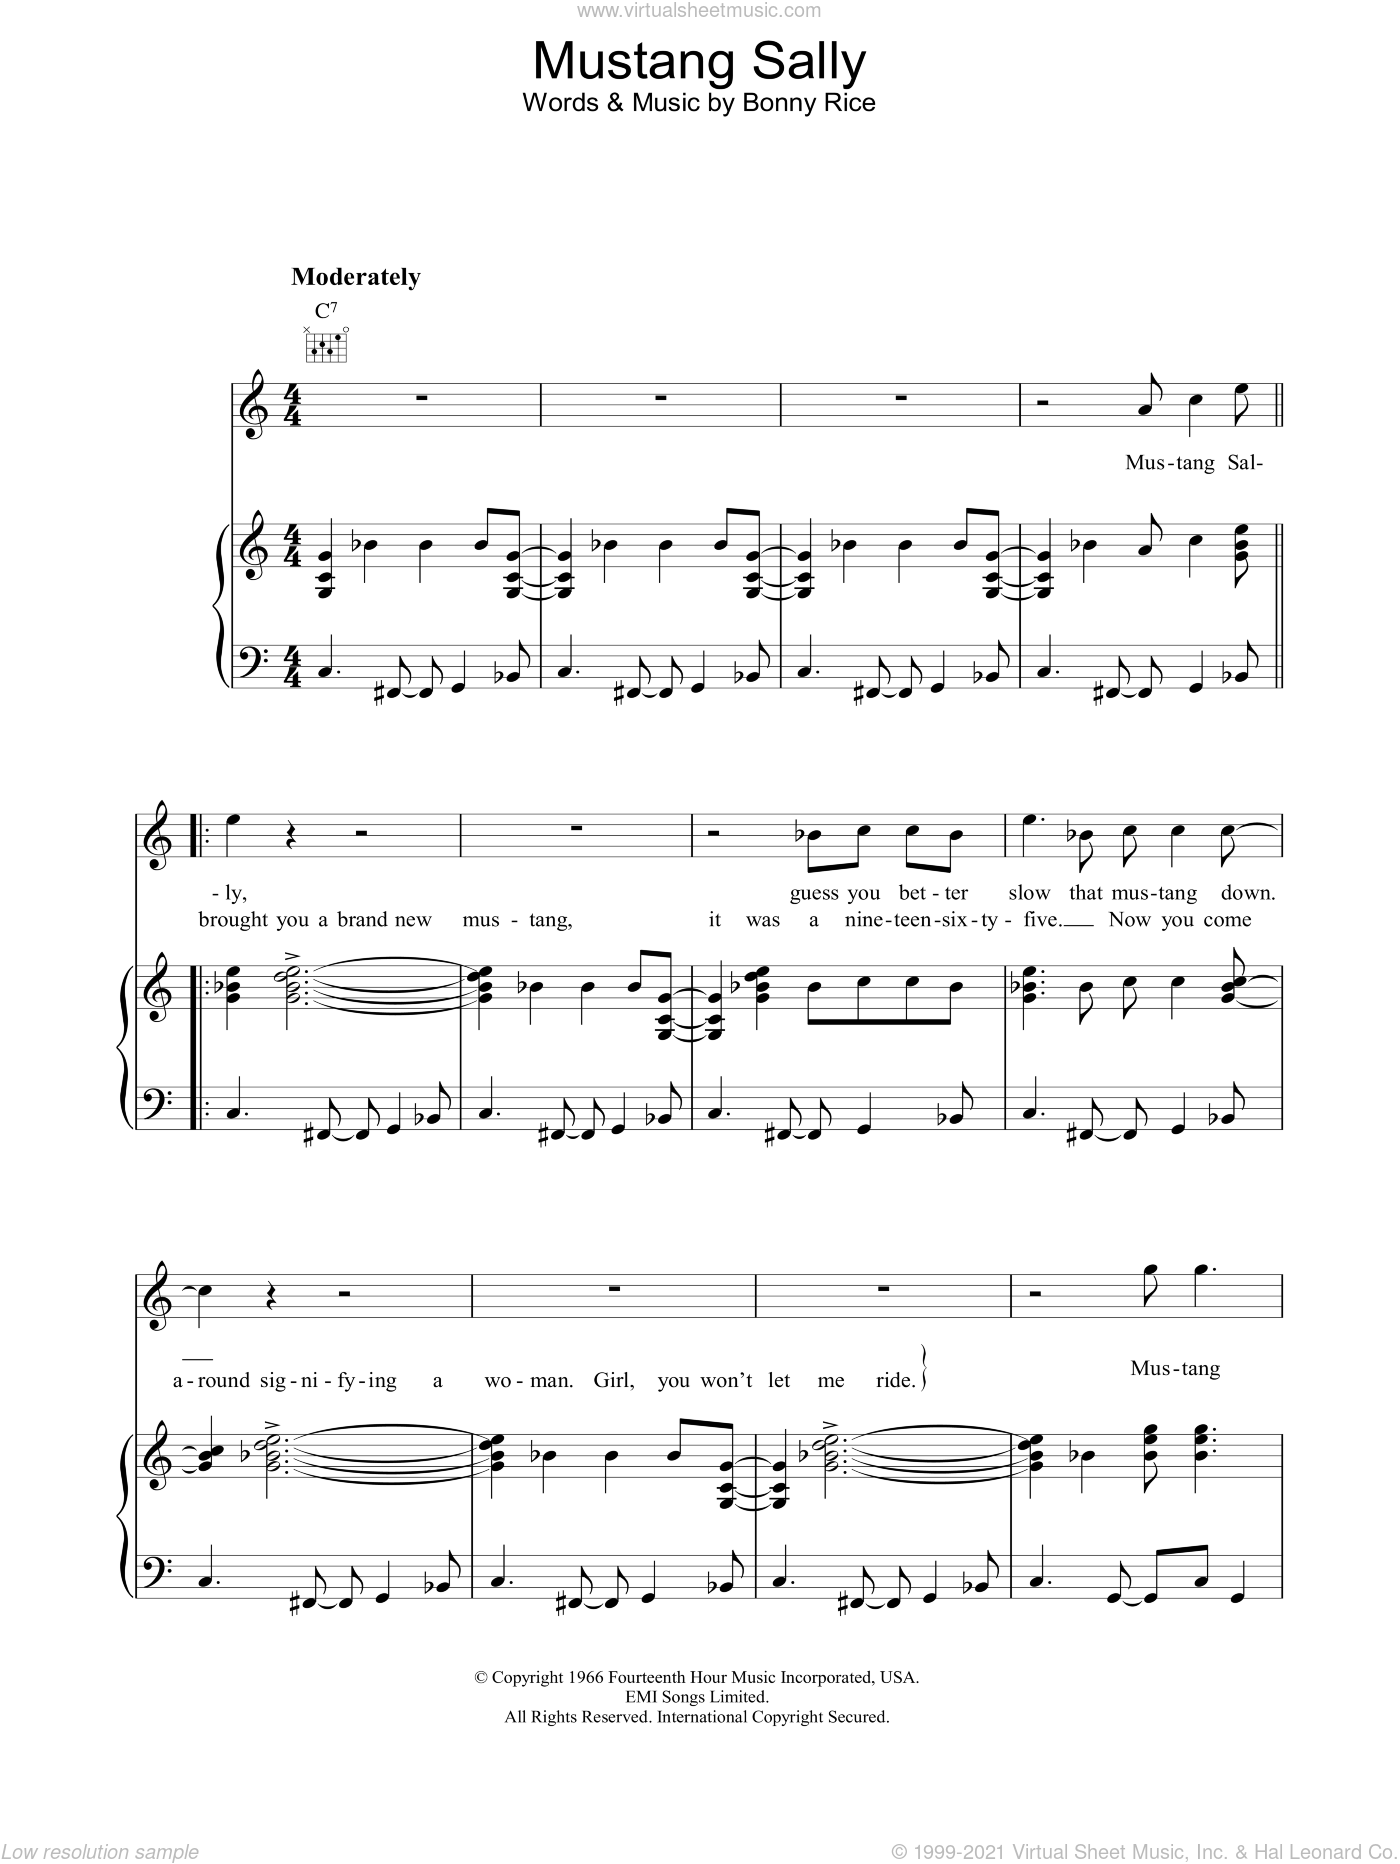 Mustang Sally sheet music for voice, piano or guitar by Bonny Rice